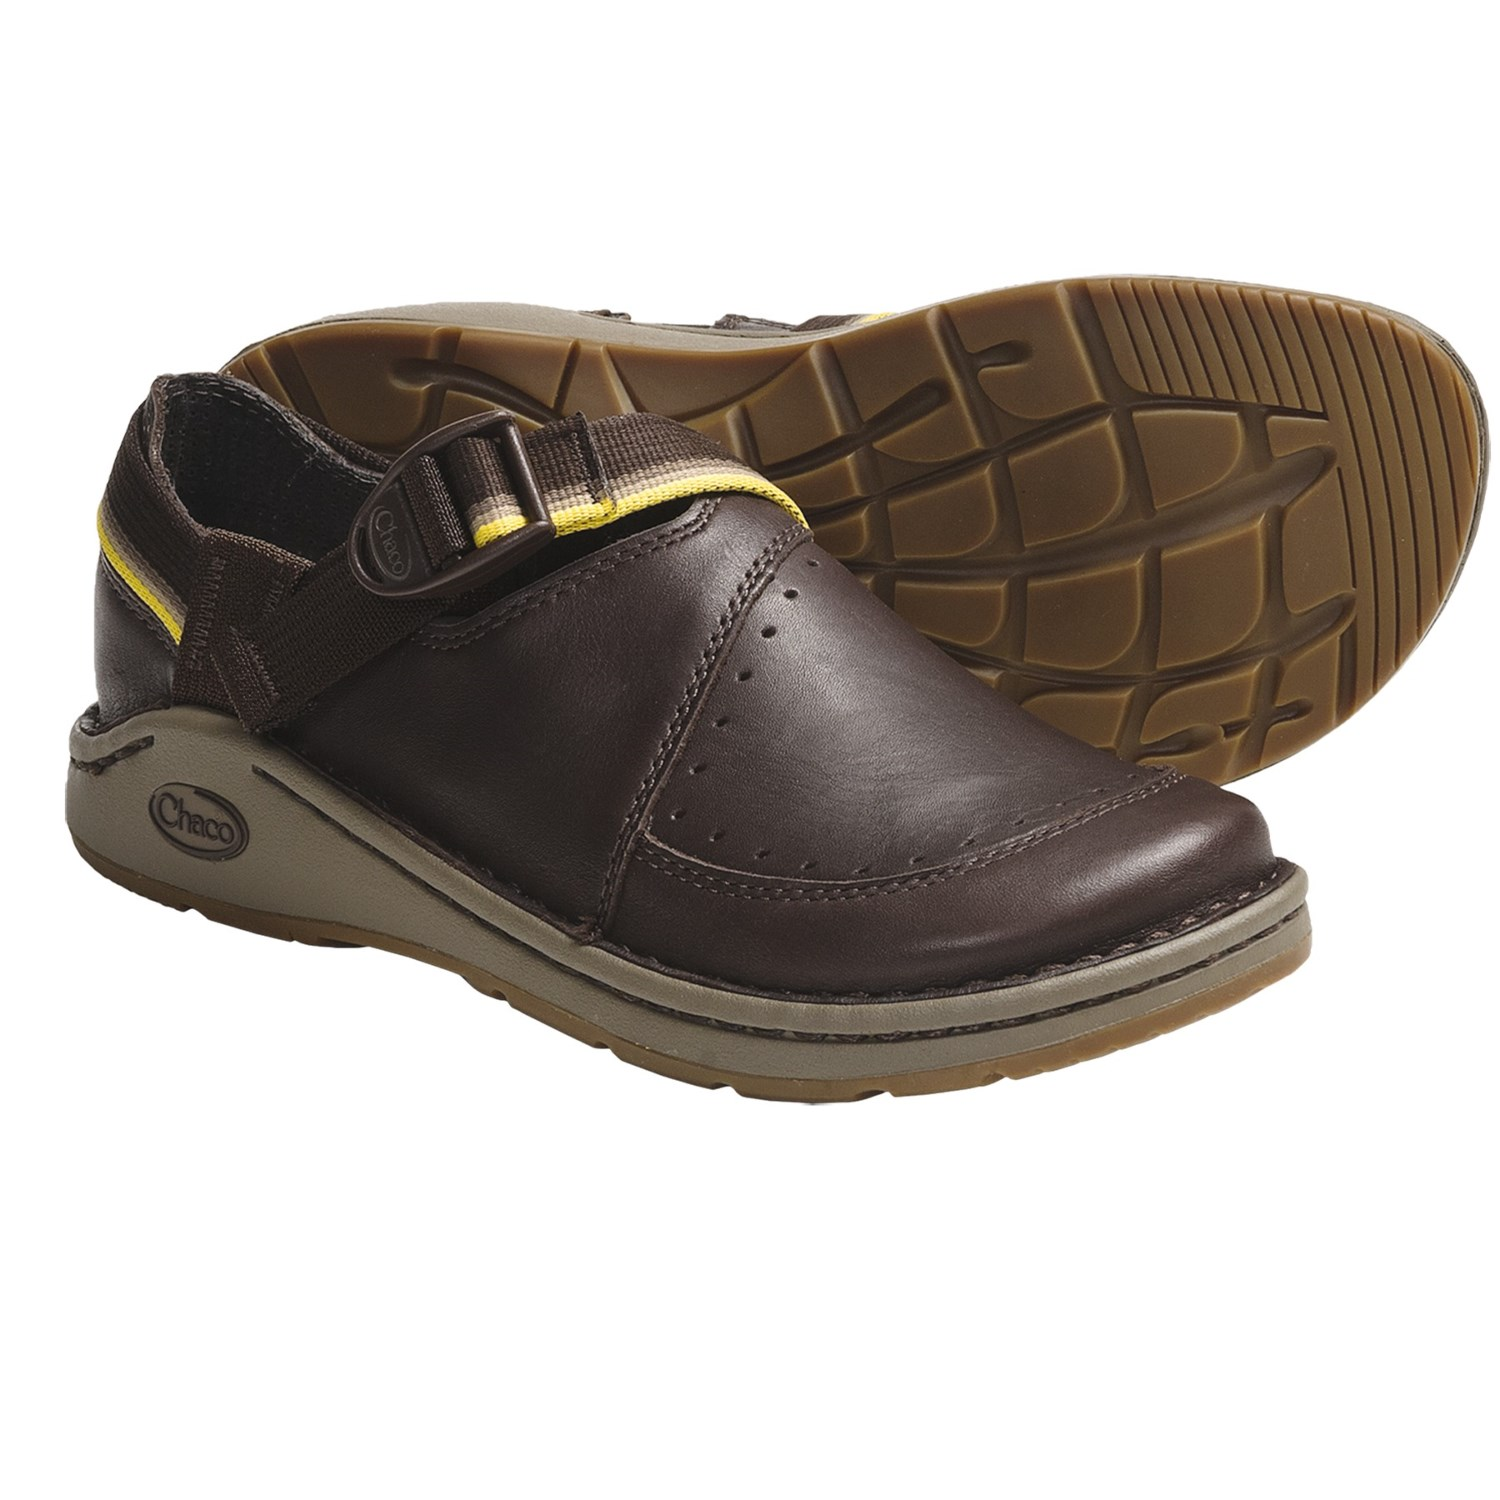 Chaco Campus Vibram^ Gunnison Shoes (For Women) in Chocolate Brown